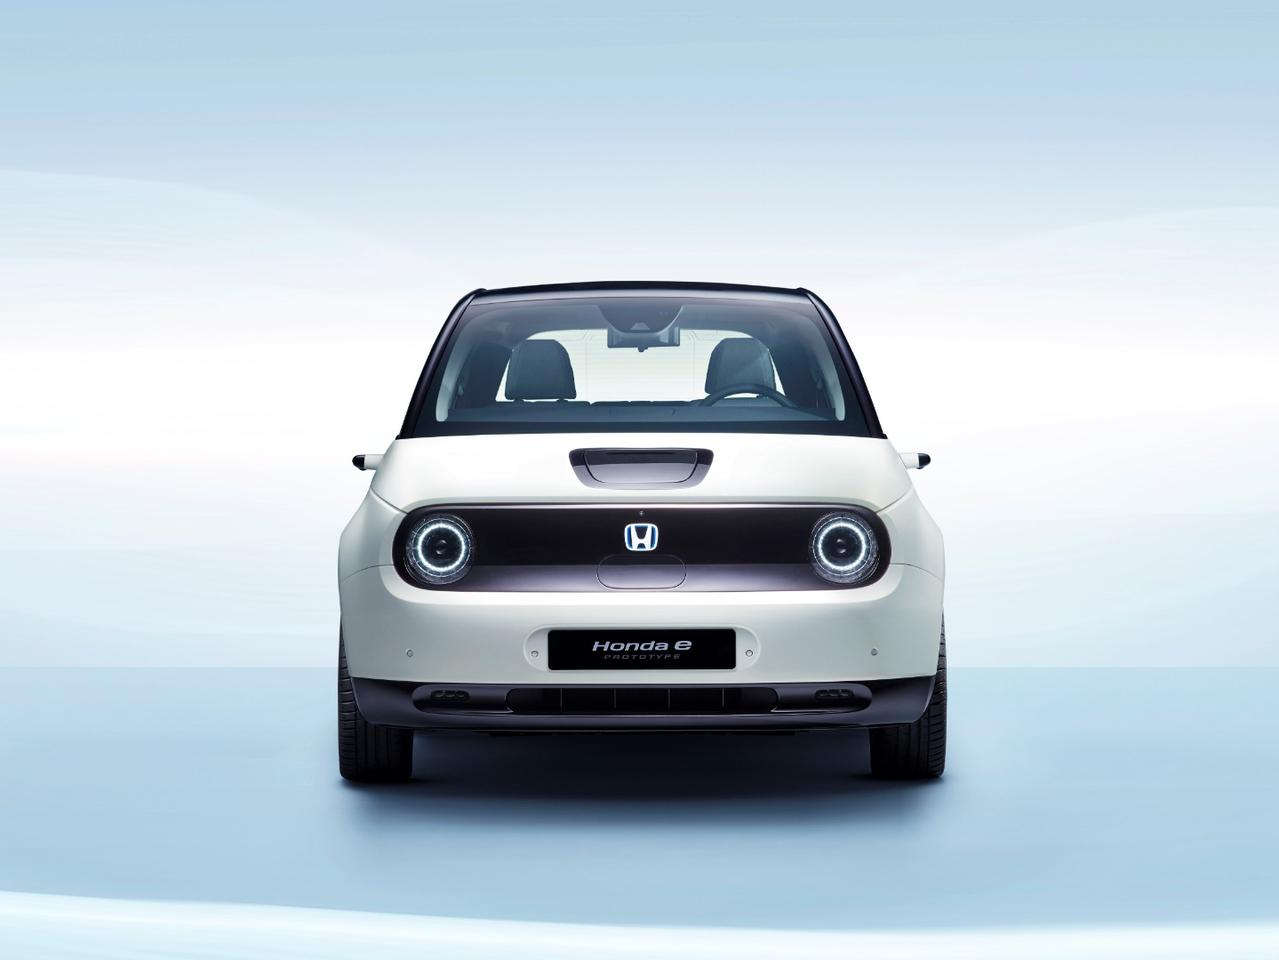 It's tiny, cute, practical and ready to hit the road in 2020